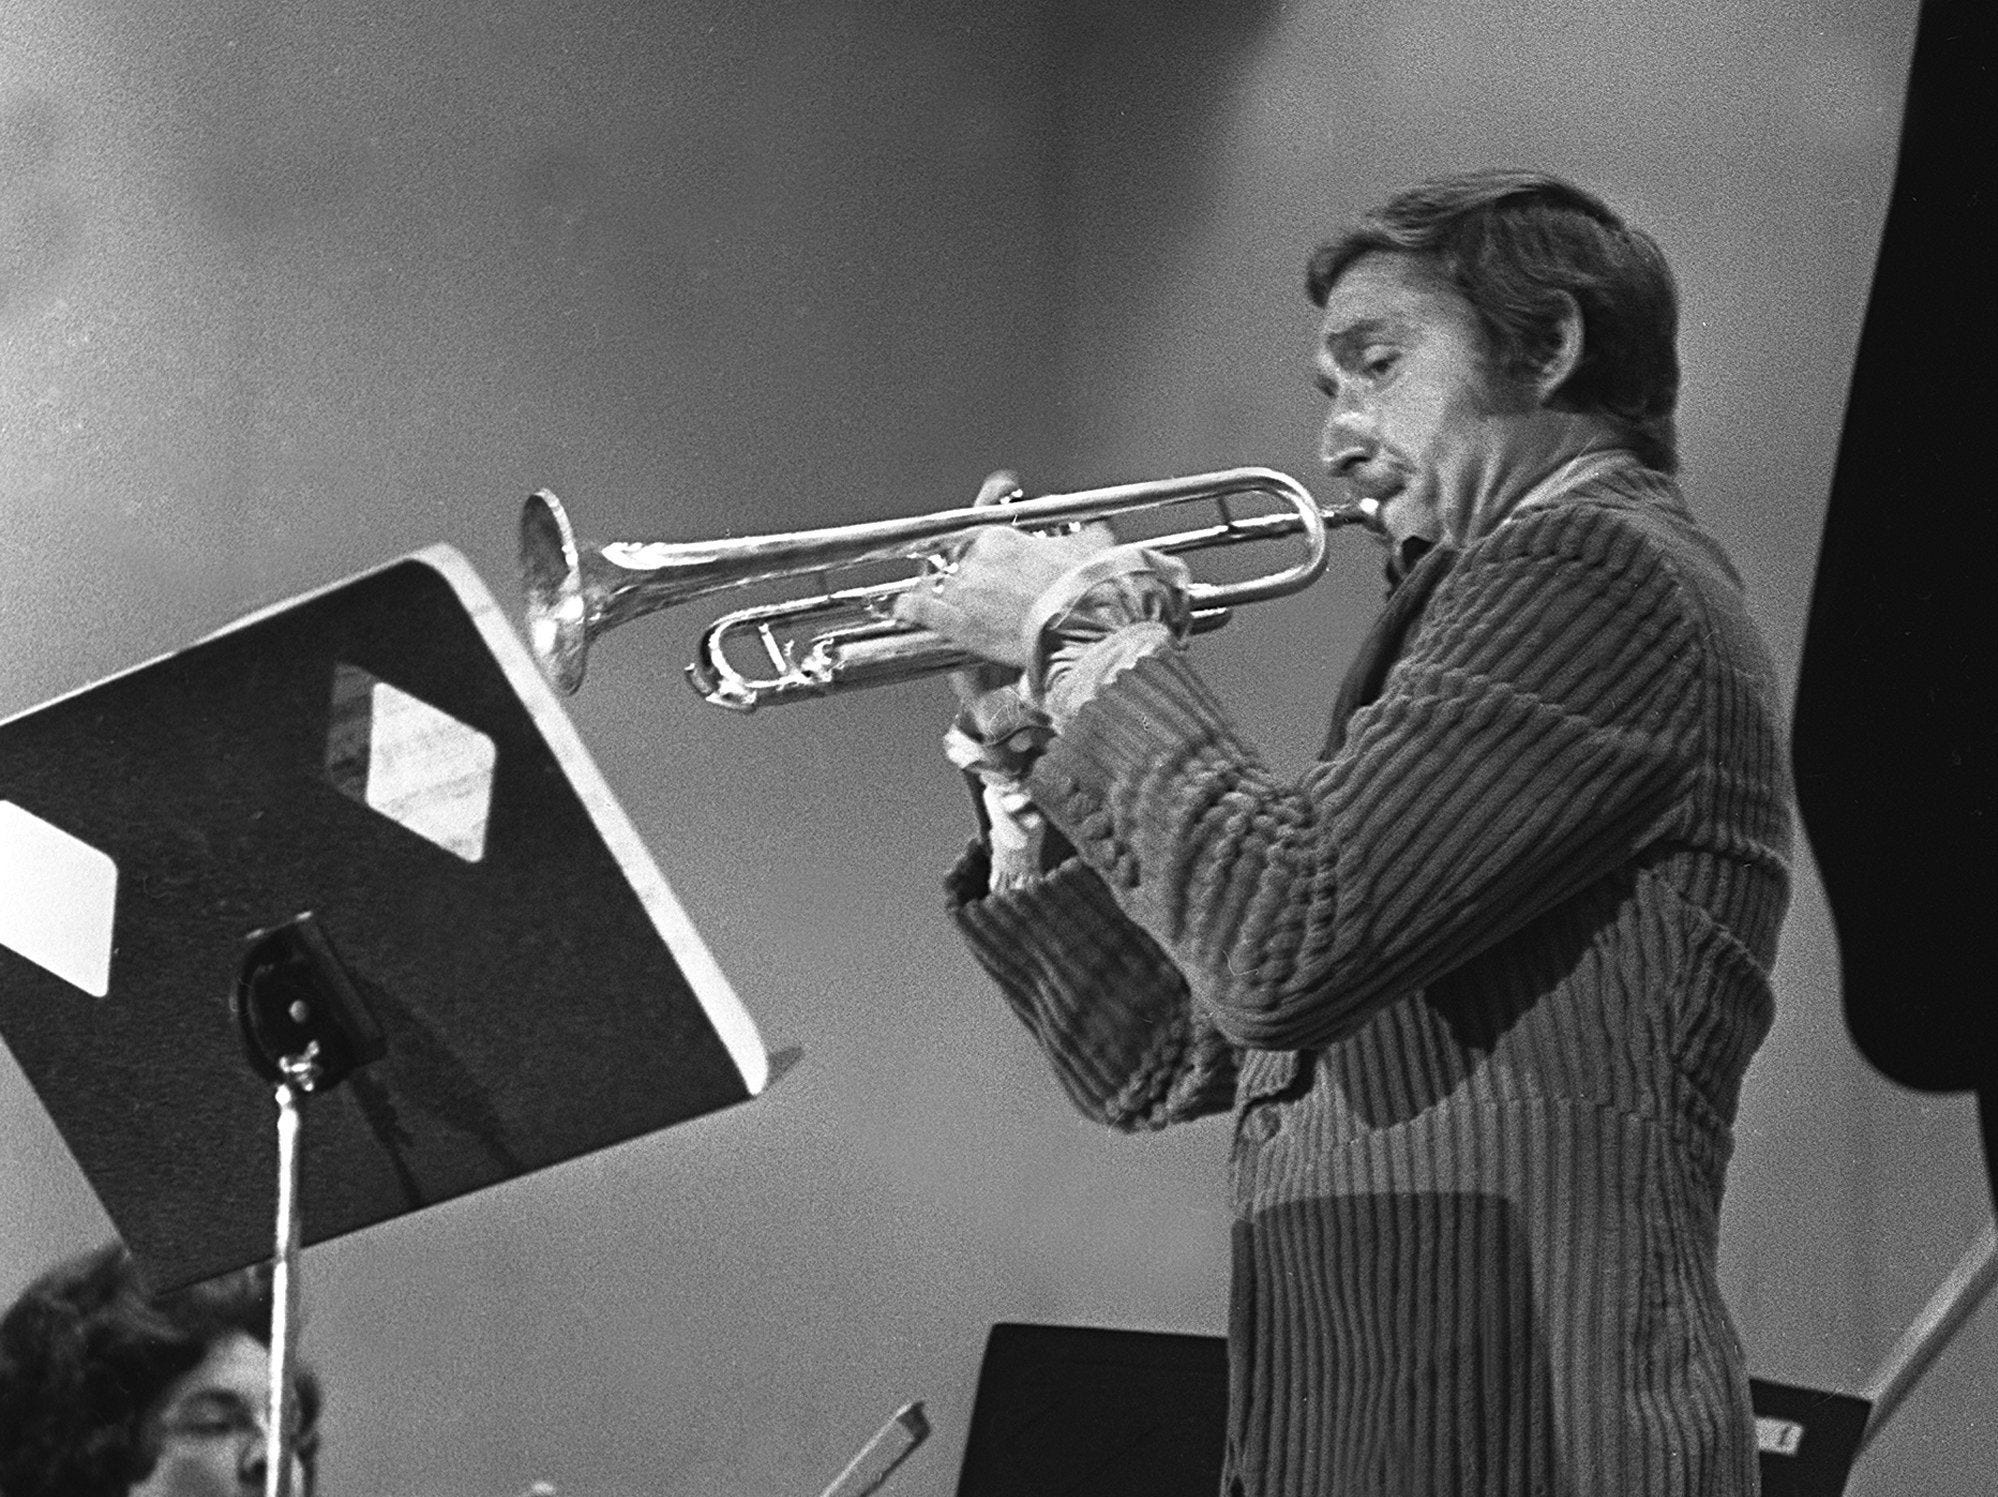 Doc Severinsen brings his exceptional musical talents to the Memphis Symphony and the Auditorium in February 1970.